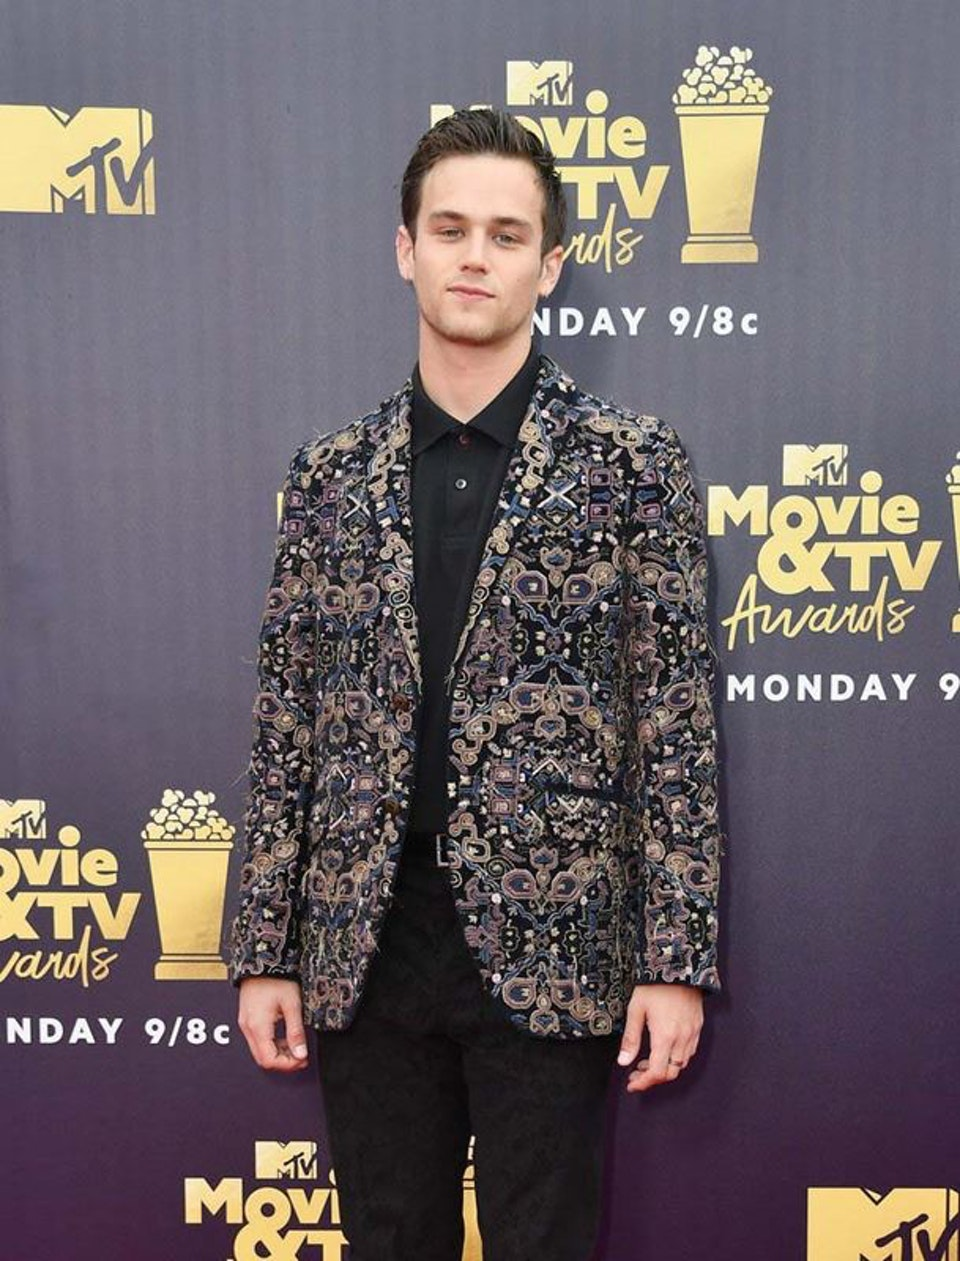 BRANDON FLYNN | MTV MOVIE AWARDS